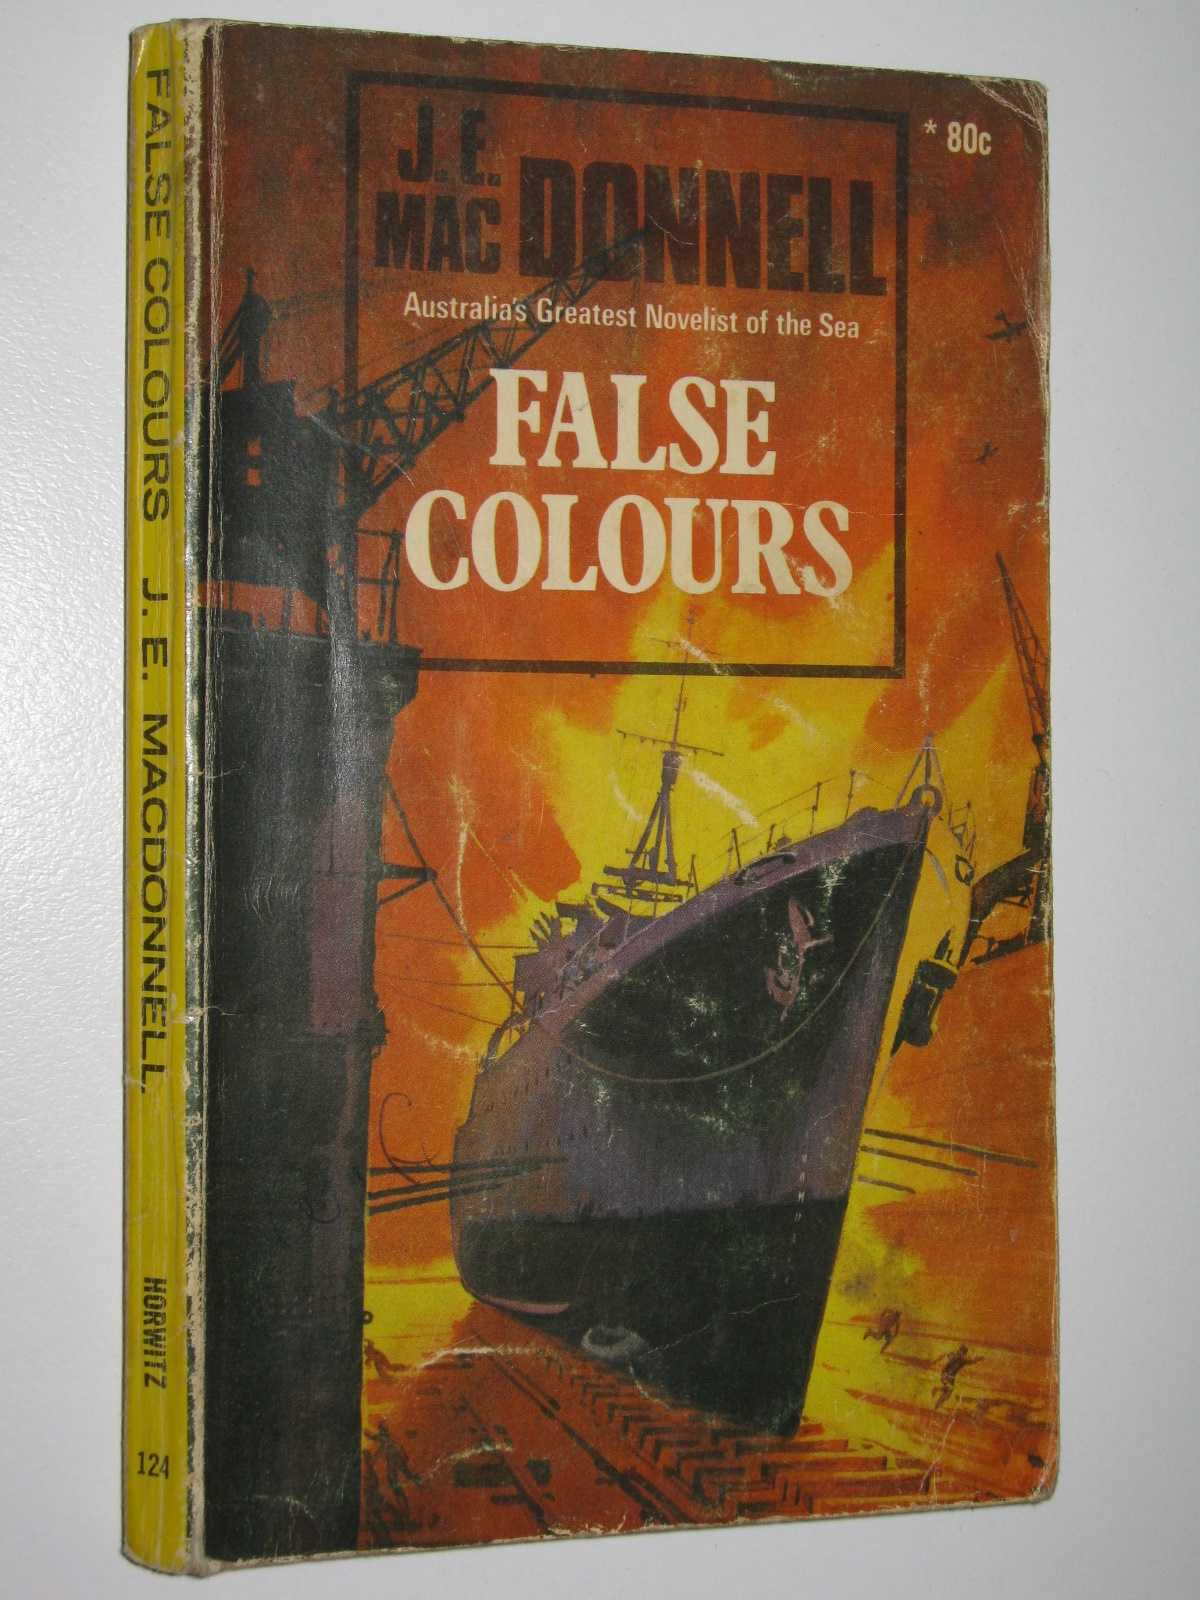 False Colours, Macdonnell, J. E.